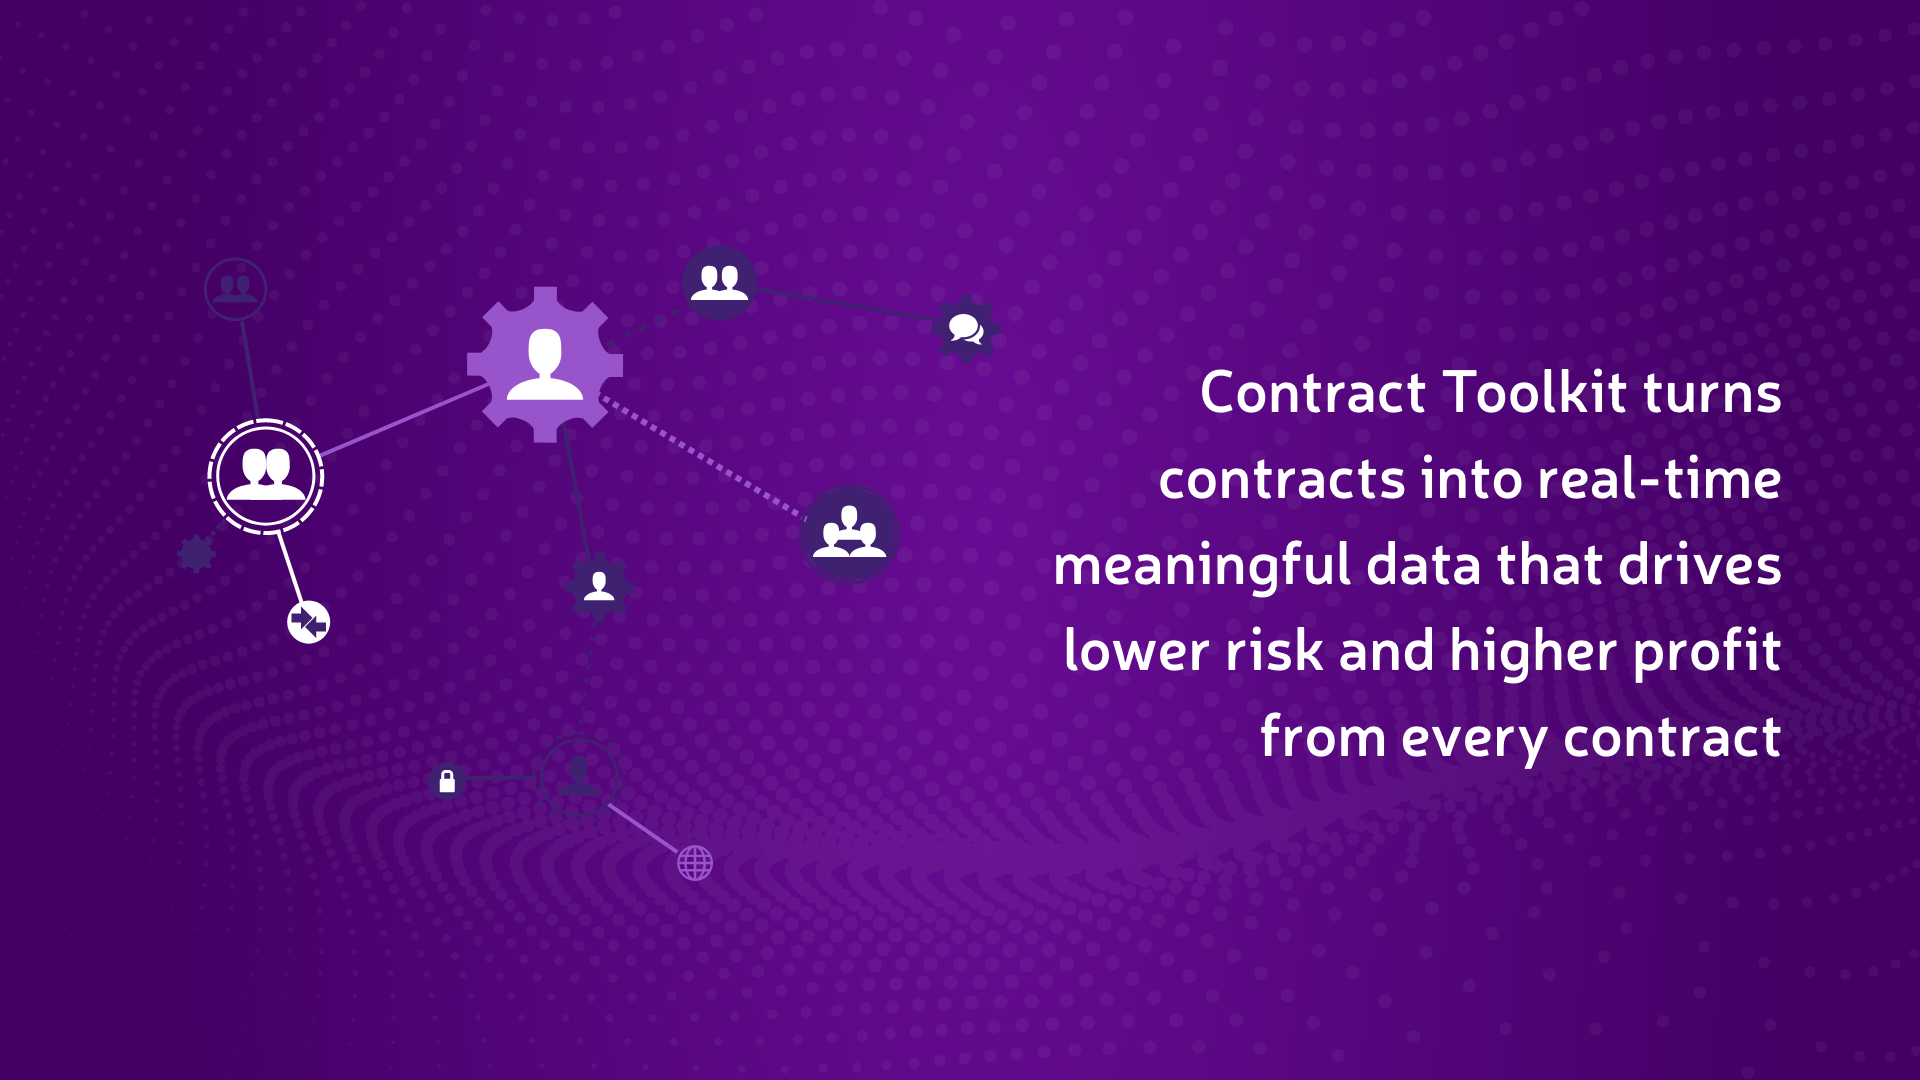 Contract Toolkit Limited Slider Image